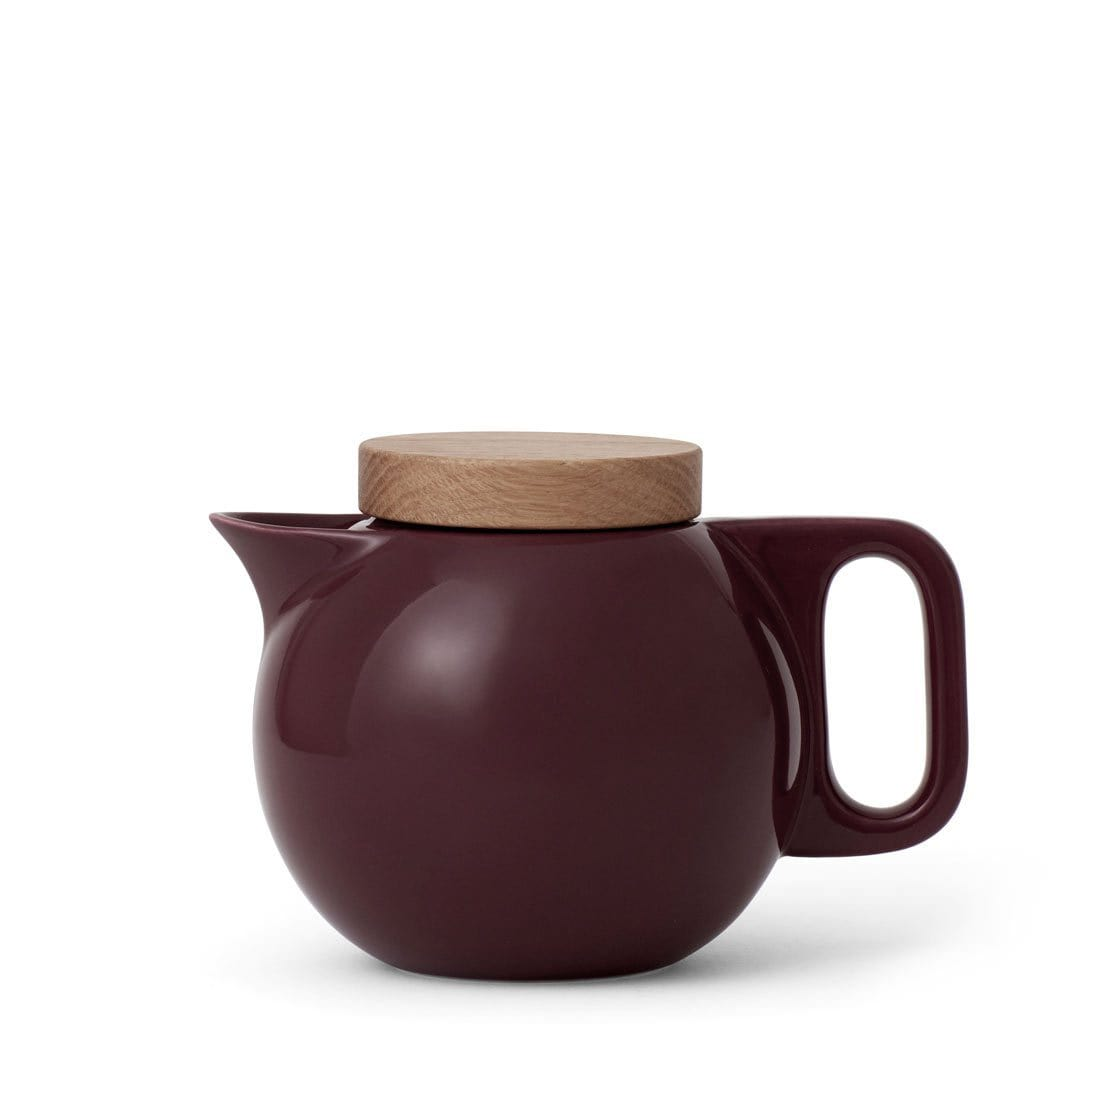 v78600-jaimi-teapot-bordeaux | Color=Mulled wine